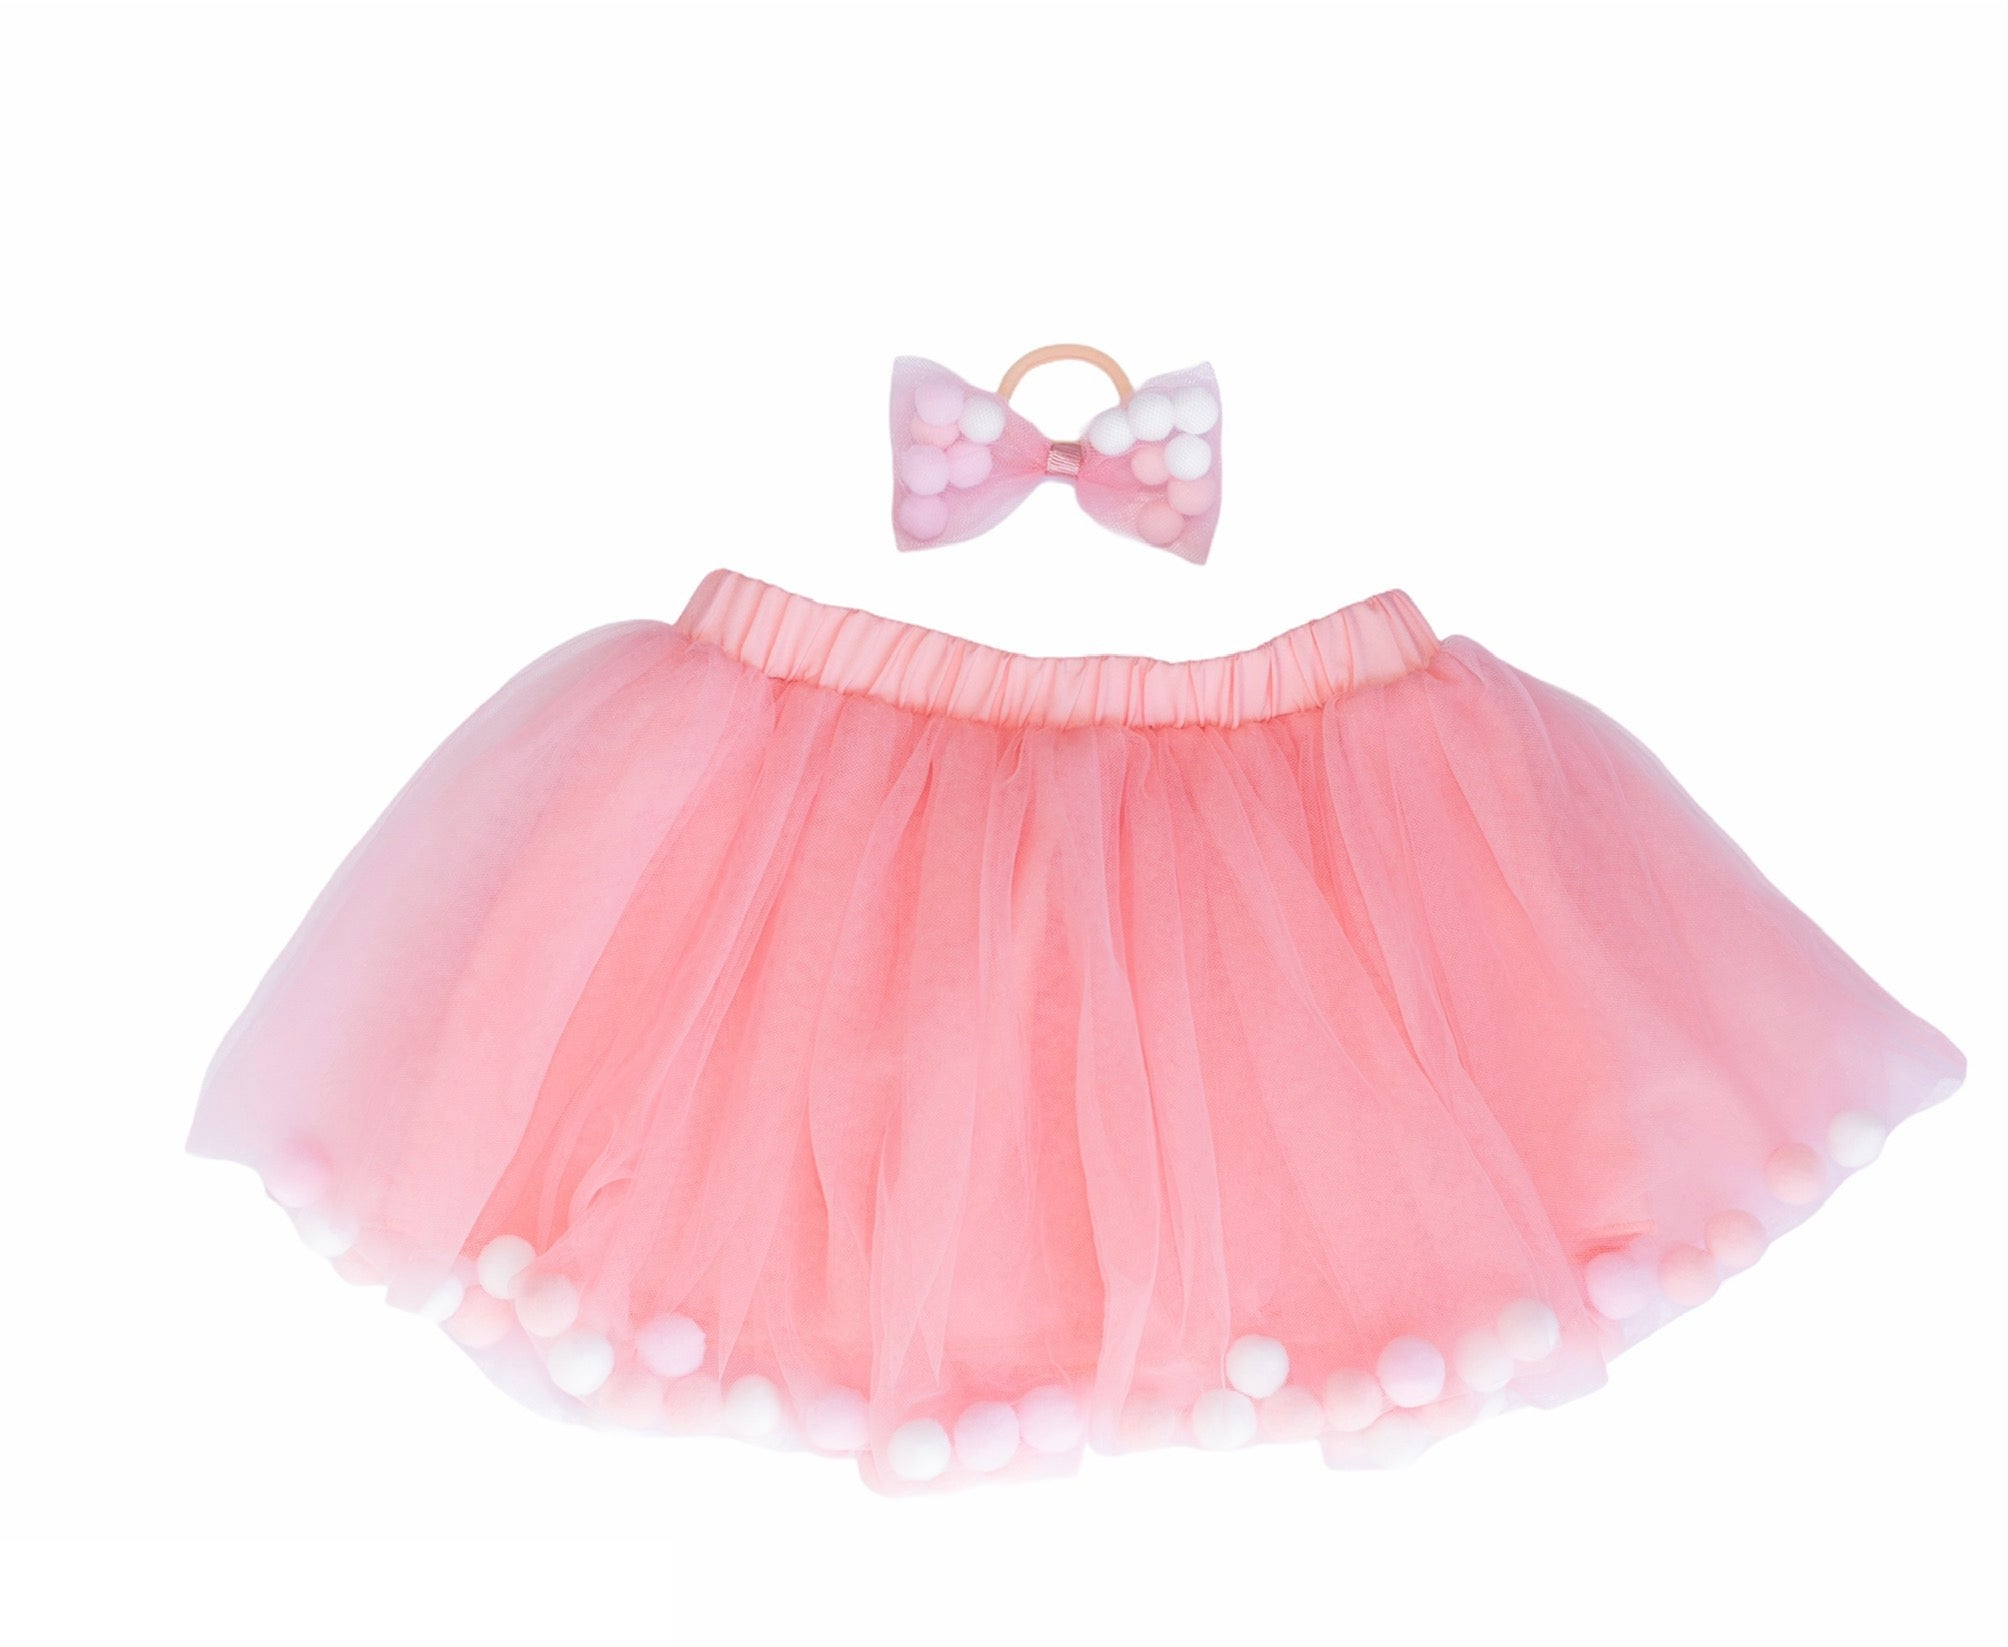 birthday tutu for cakesmash, pom pom hair tie bow for children, tutu joli rose pink tutu skirt, pom pom tutu dusty rose, rose pink pom pom hair bow, pom pom hair accessories, pom pom balls tutu, tootoo, pompoms, rose pink tutu skirt, dusty pink tutu with poms, pompoms, rose pink tootoo for kids, kids ballet tutu skirt in white pink, baby ballet tutu skirt in dusty rose pink, tutu set 2 pieces, 2pc pom pom tutu and headband, pom pom tutu and hair tie, kids must haves